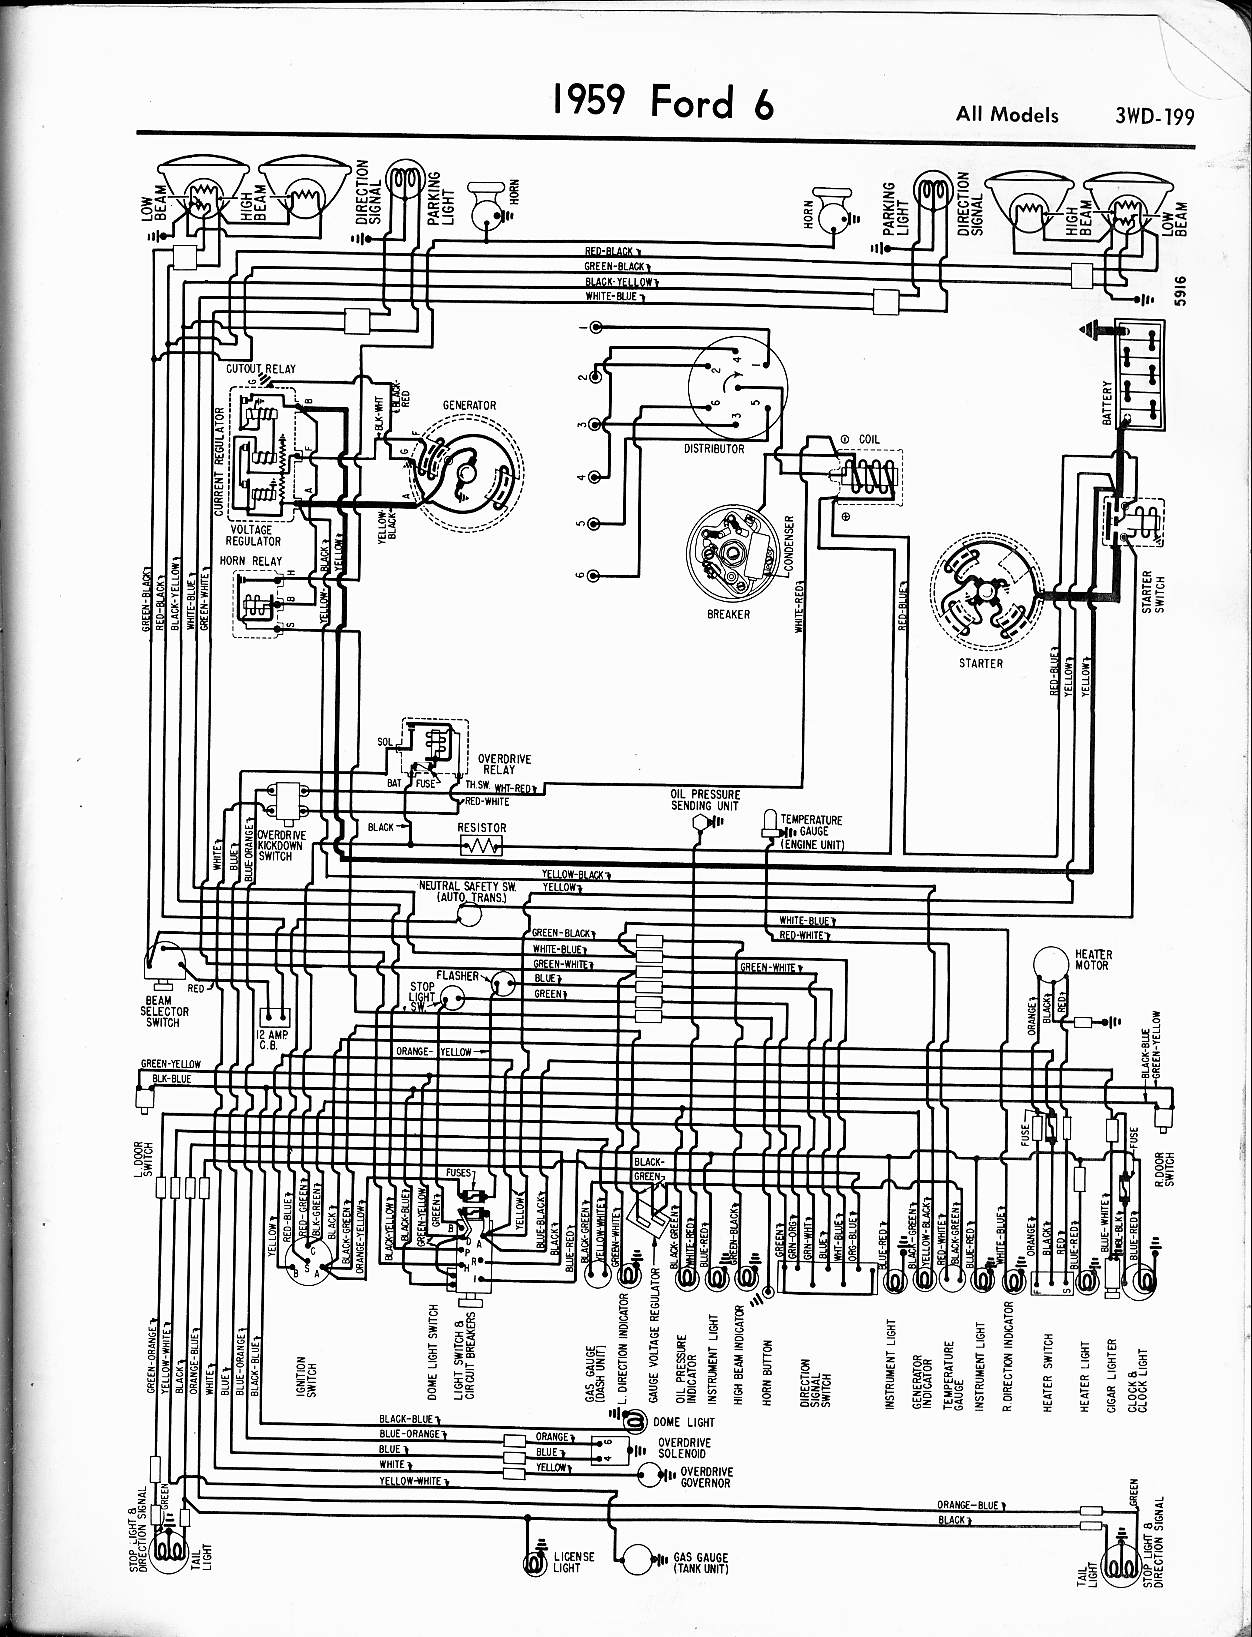 1968 Ford F100 Wiring Schematics Wiring Diagram Local A Local A Maceratadoc It